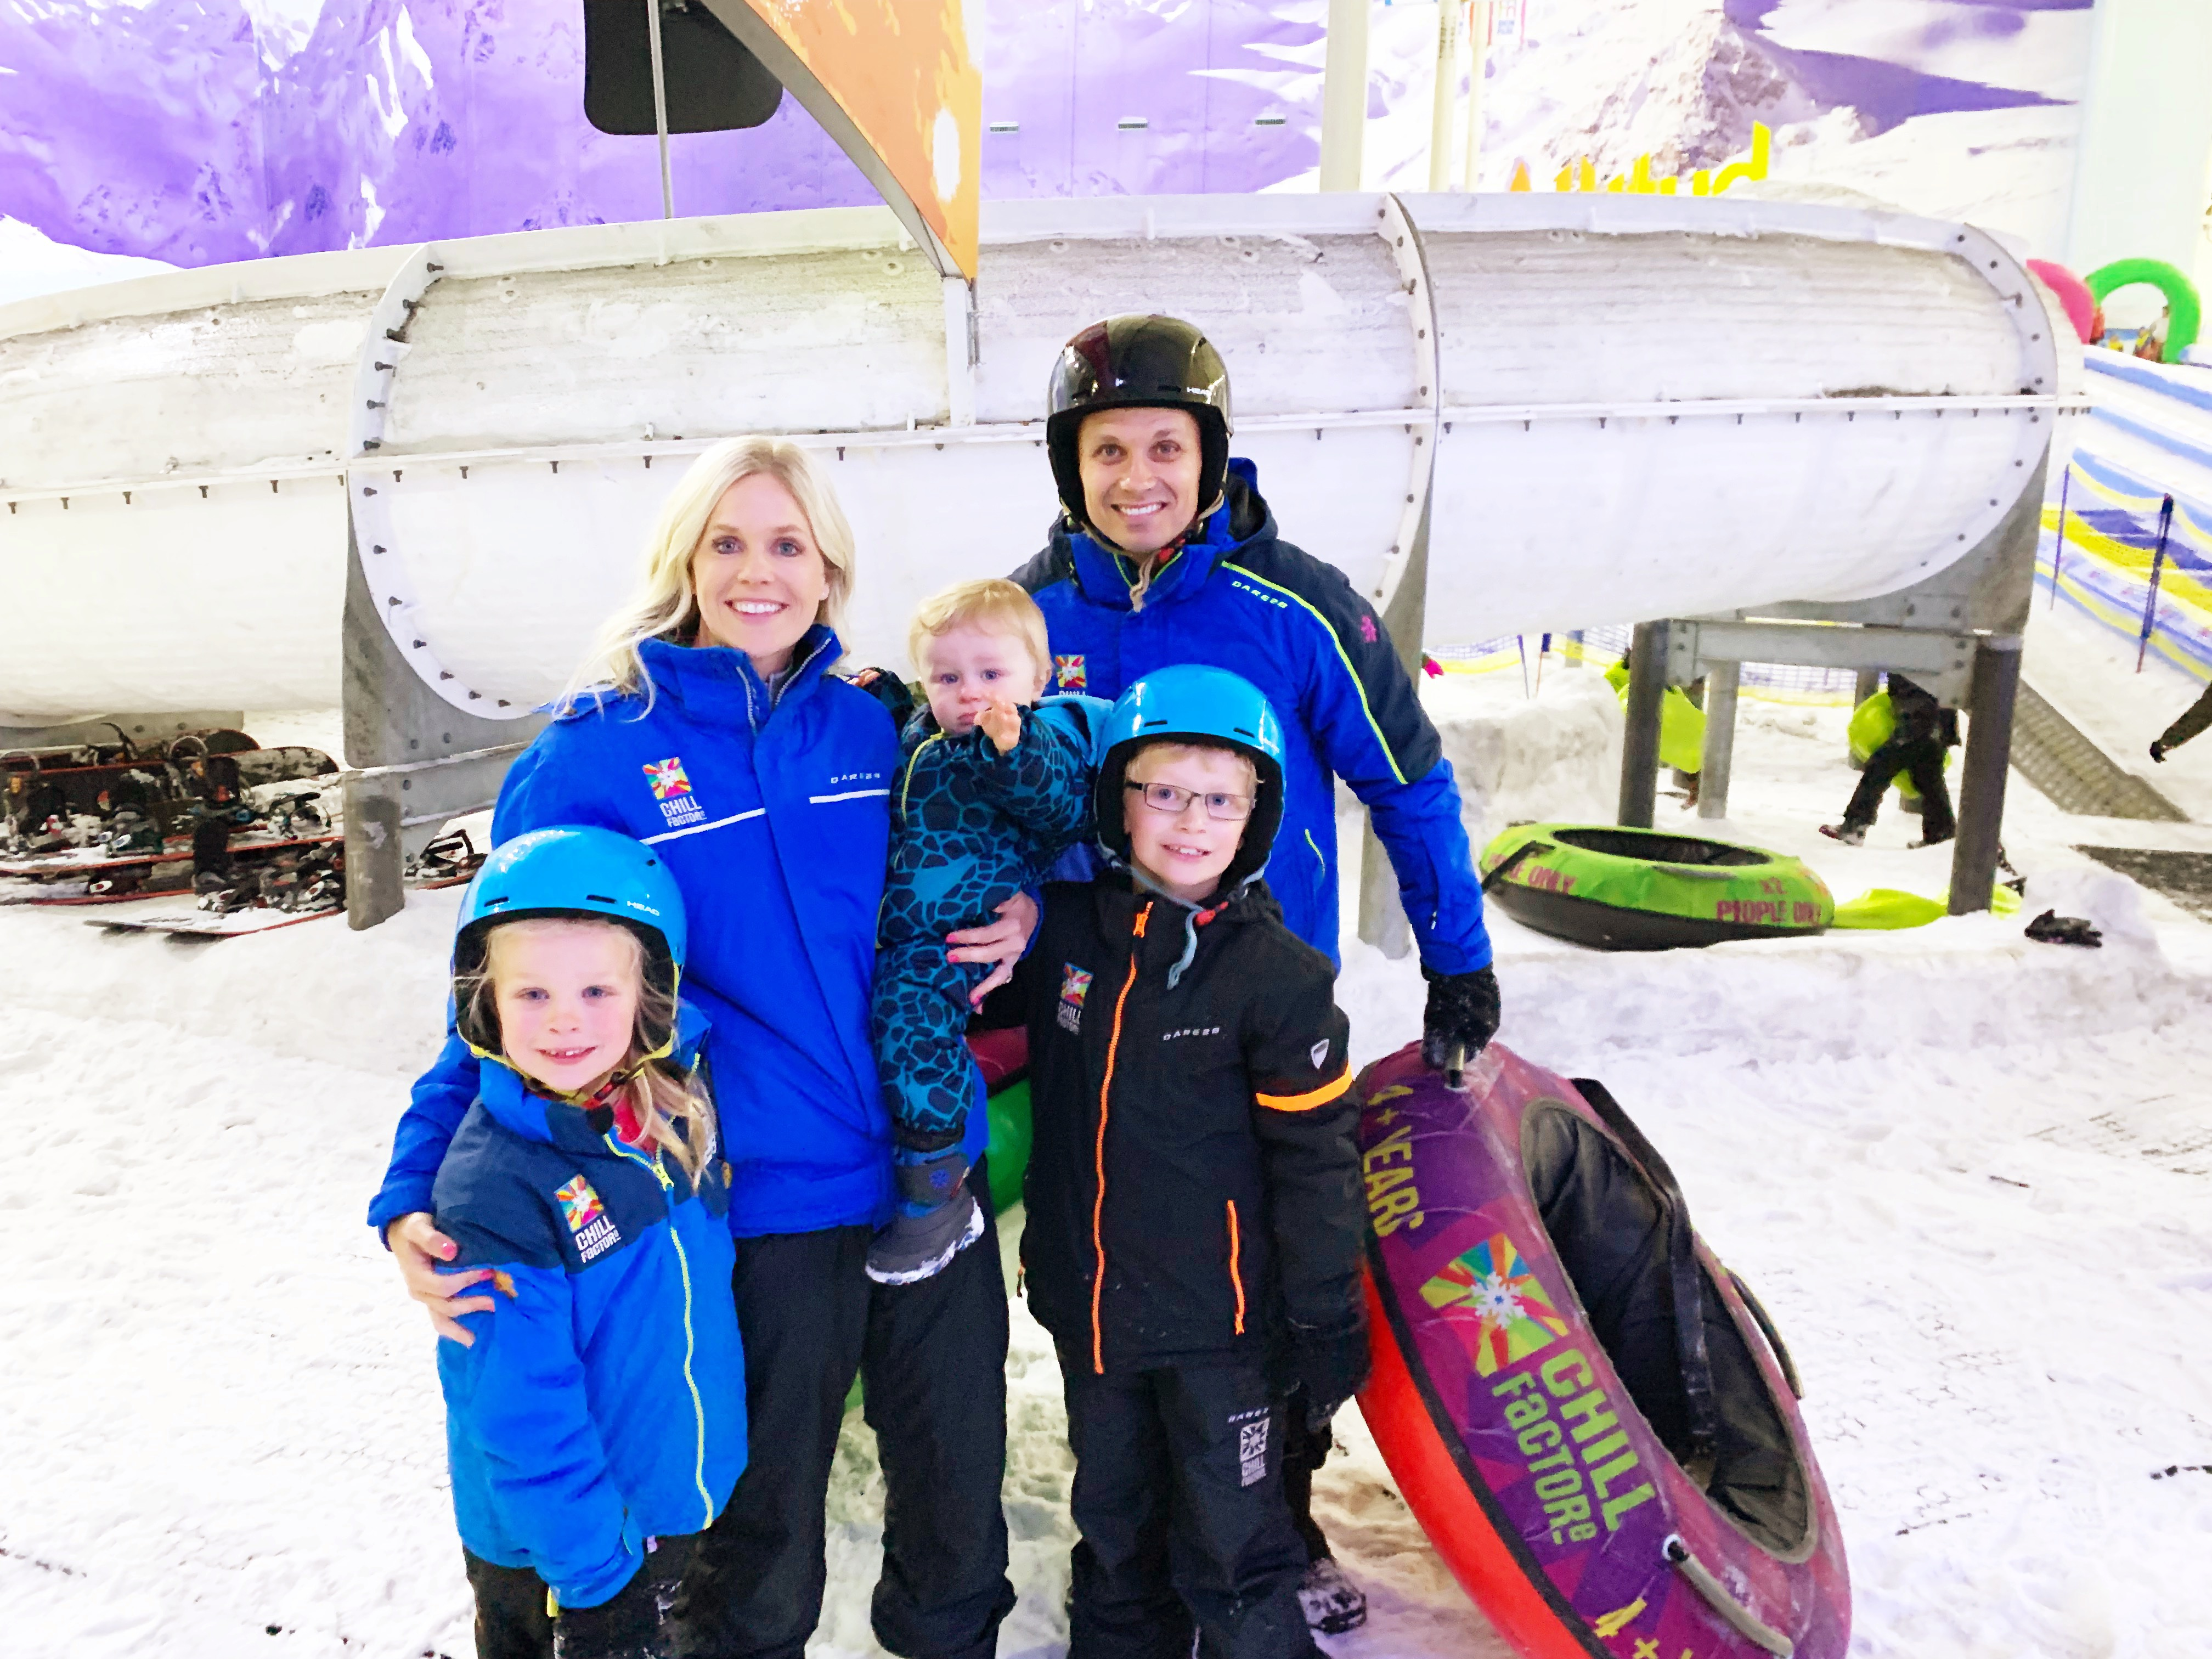 Chill Factore Manchester's Best Family Entertainment Day Out